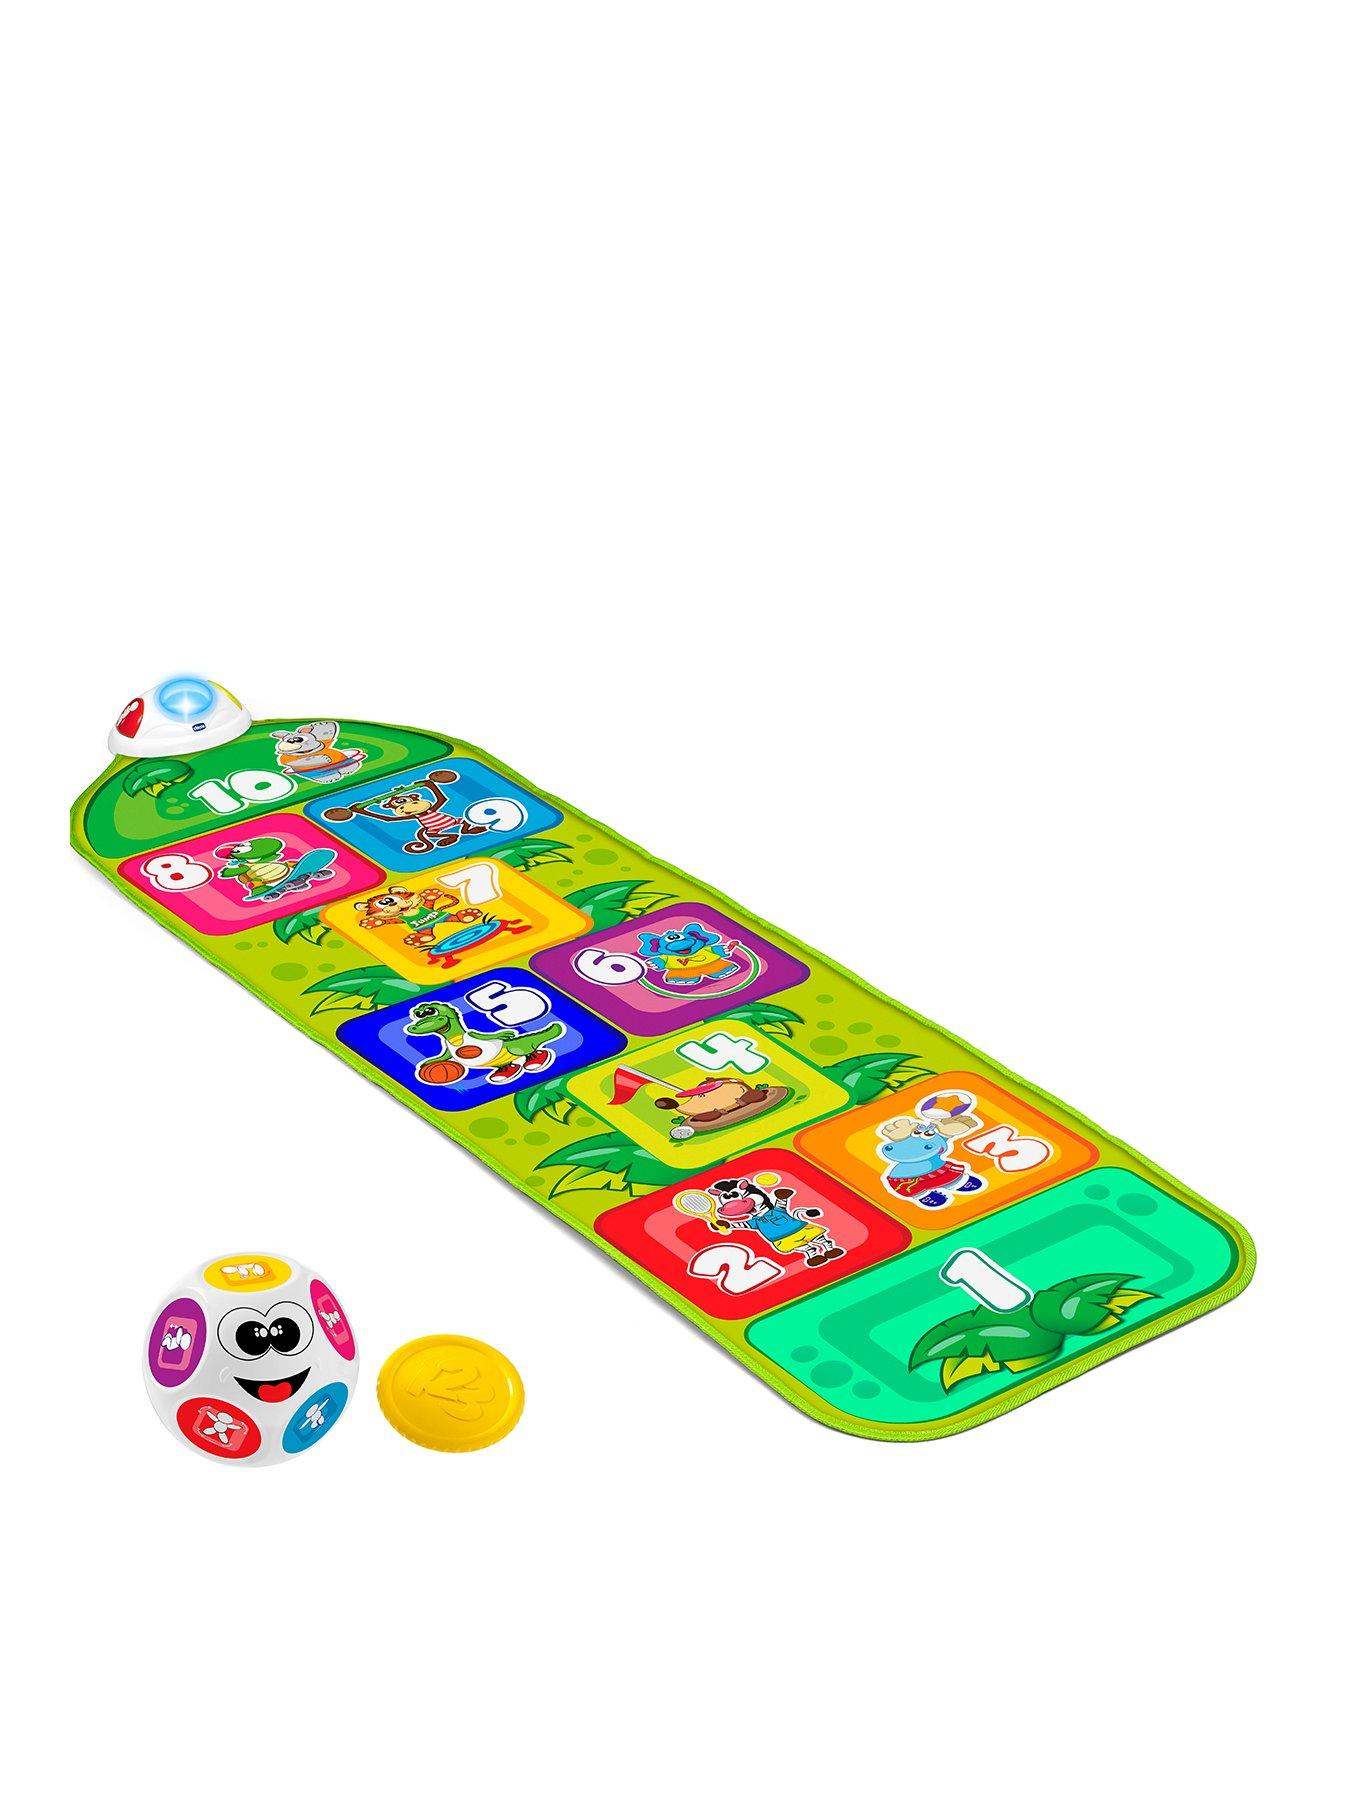 Compare prices for Chicco Jump and Fit Playmat Hopscotch